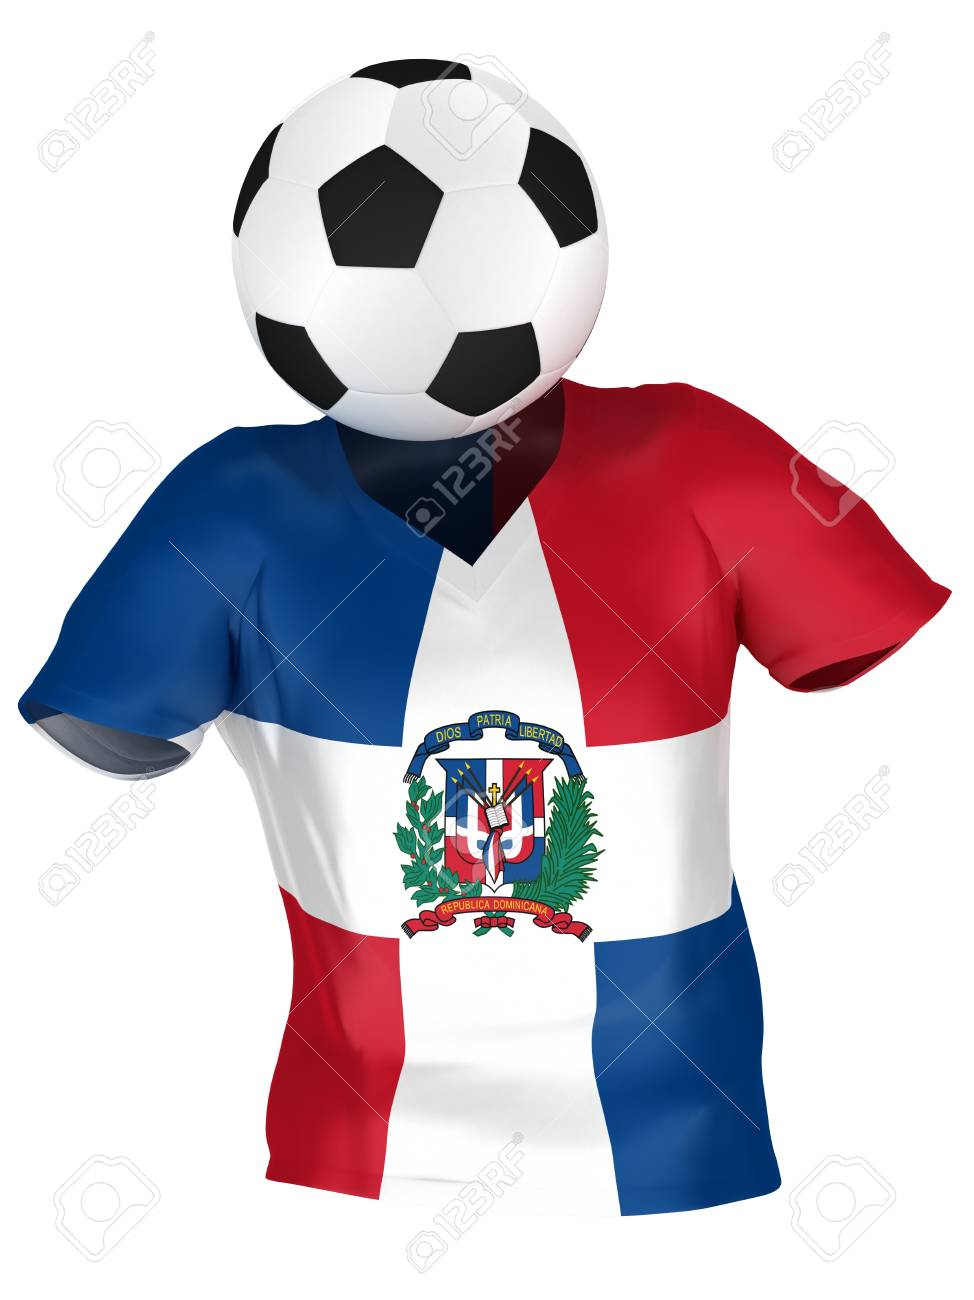 National Soccer Team Of Dominican Republic  8d6acde37